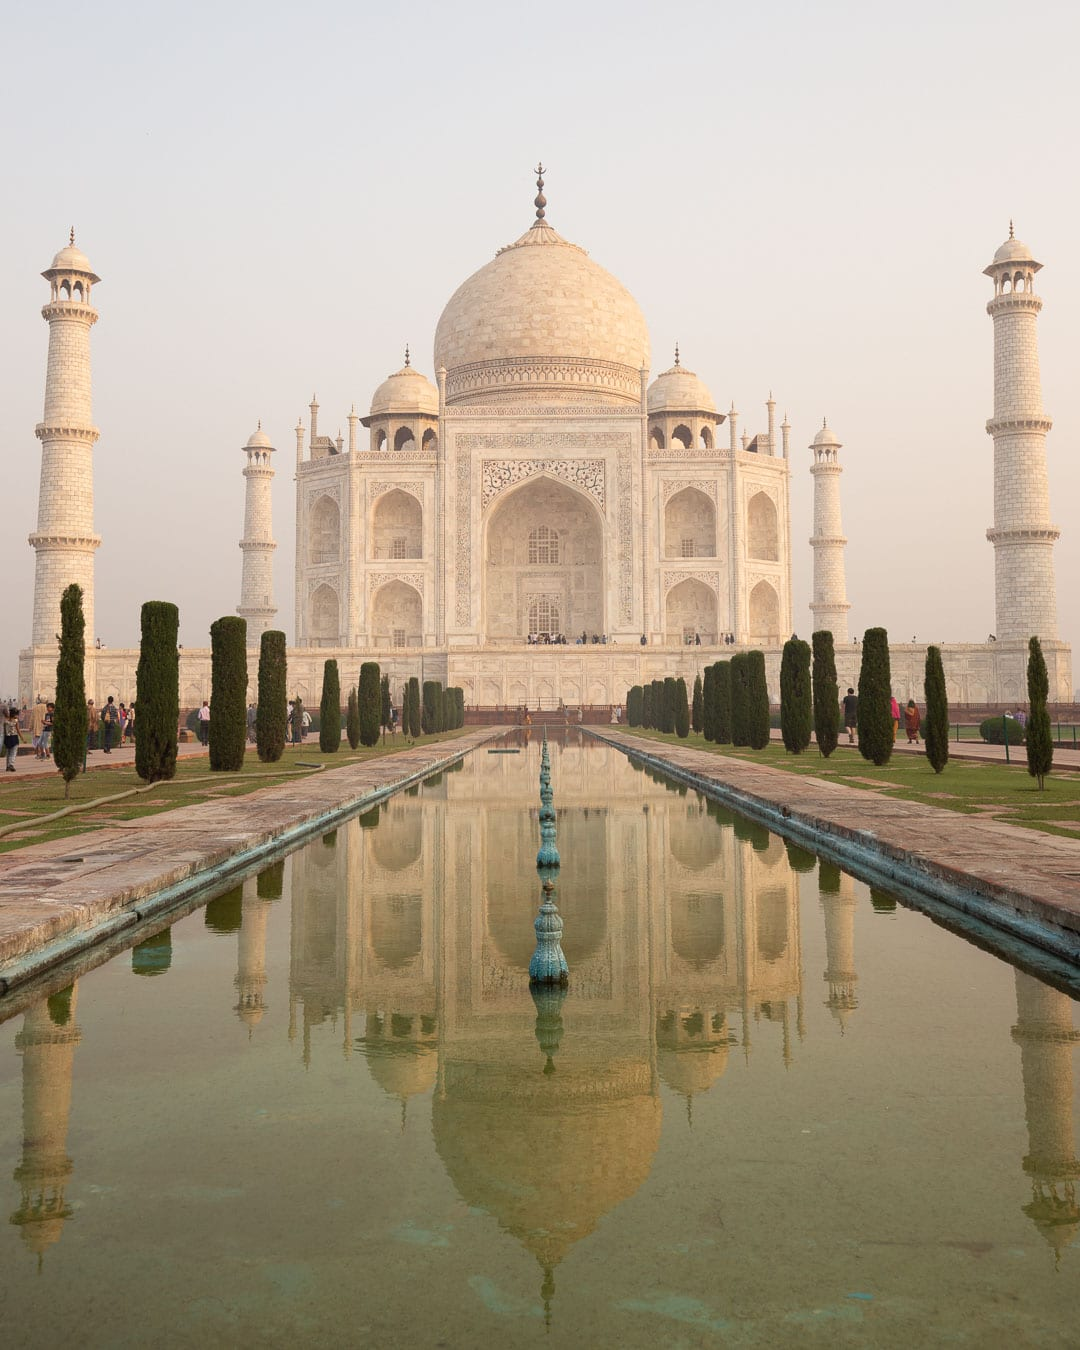 Early morning at the Taj Mahal with the monument reflecting in the fountain waters.